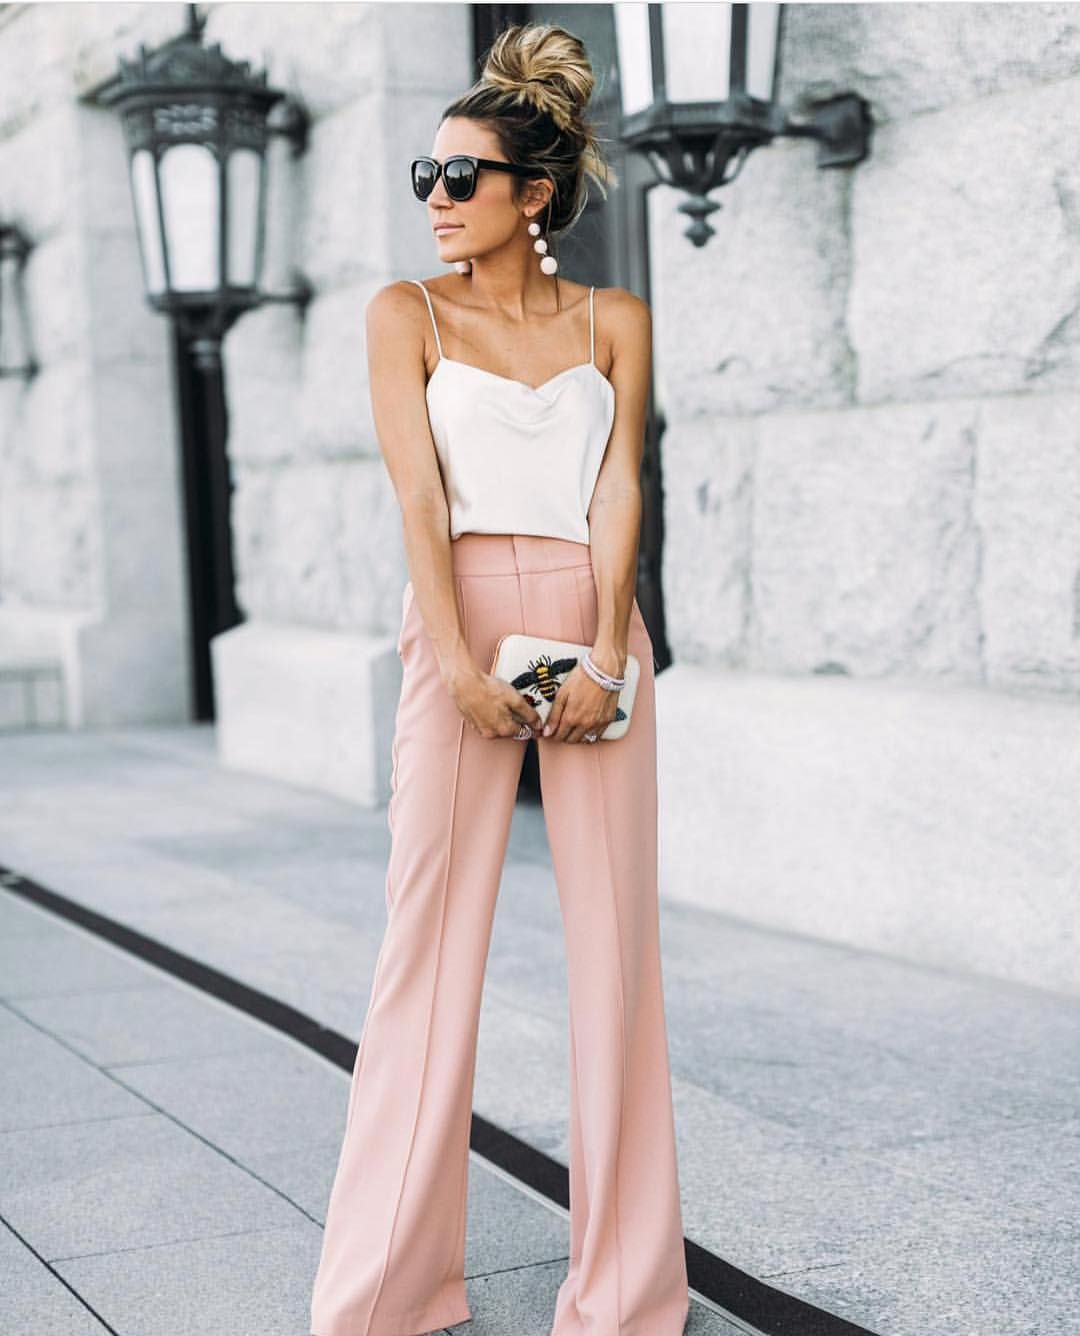 Pinterest Theamyjean Wedding Guest Pants Wedding Outfits For Women Wedding Guest Outfit Summer